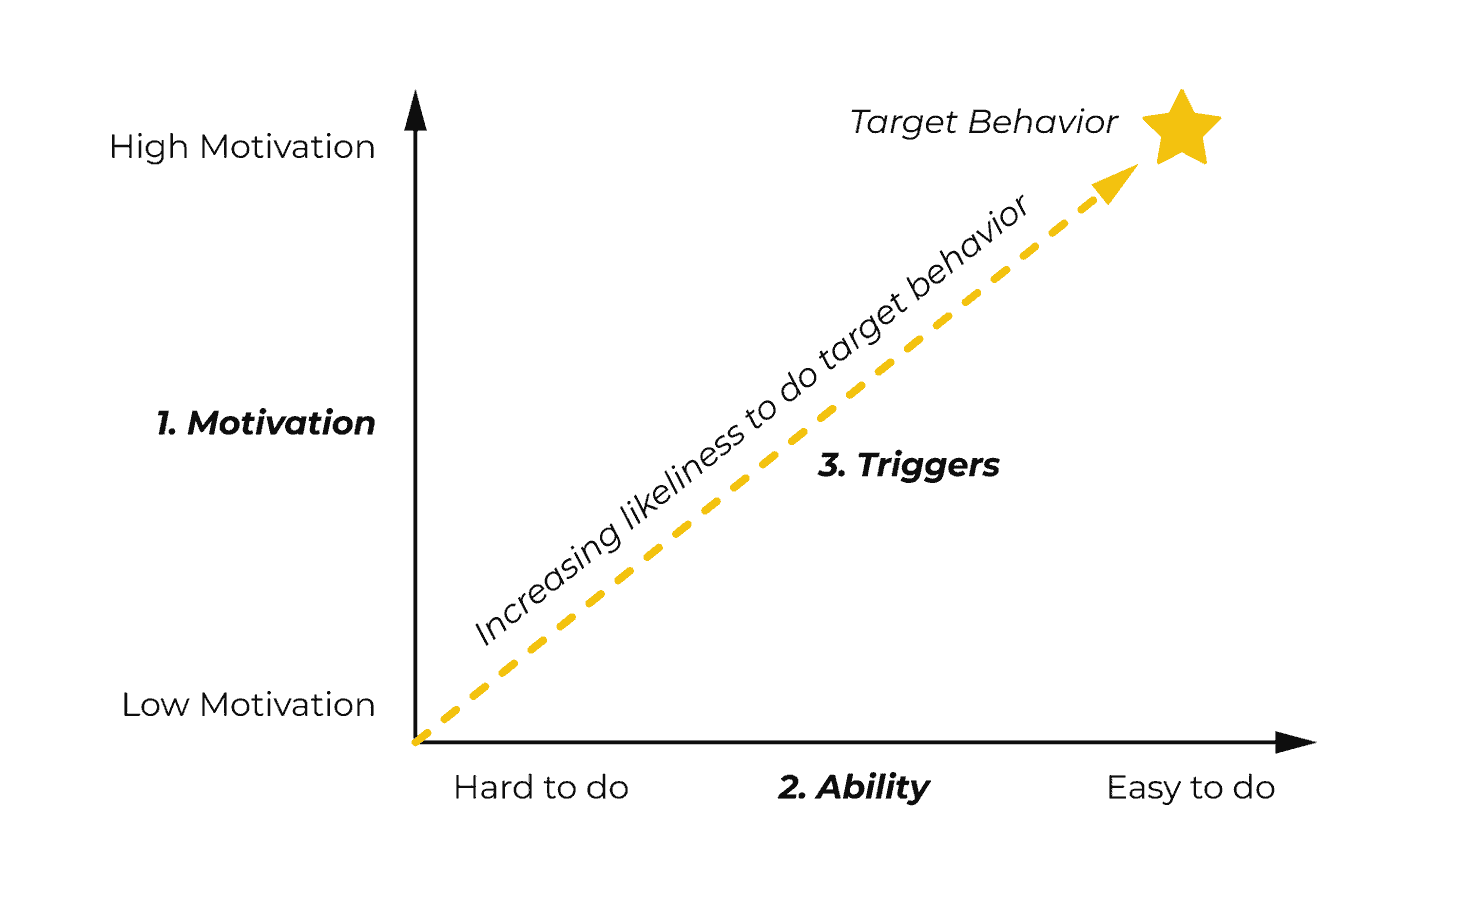 User Onboarding triggers and behavior